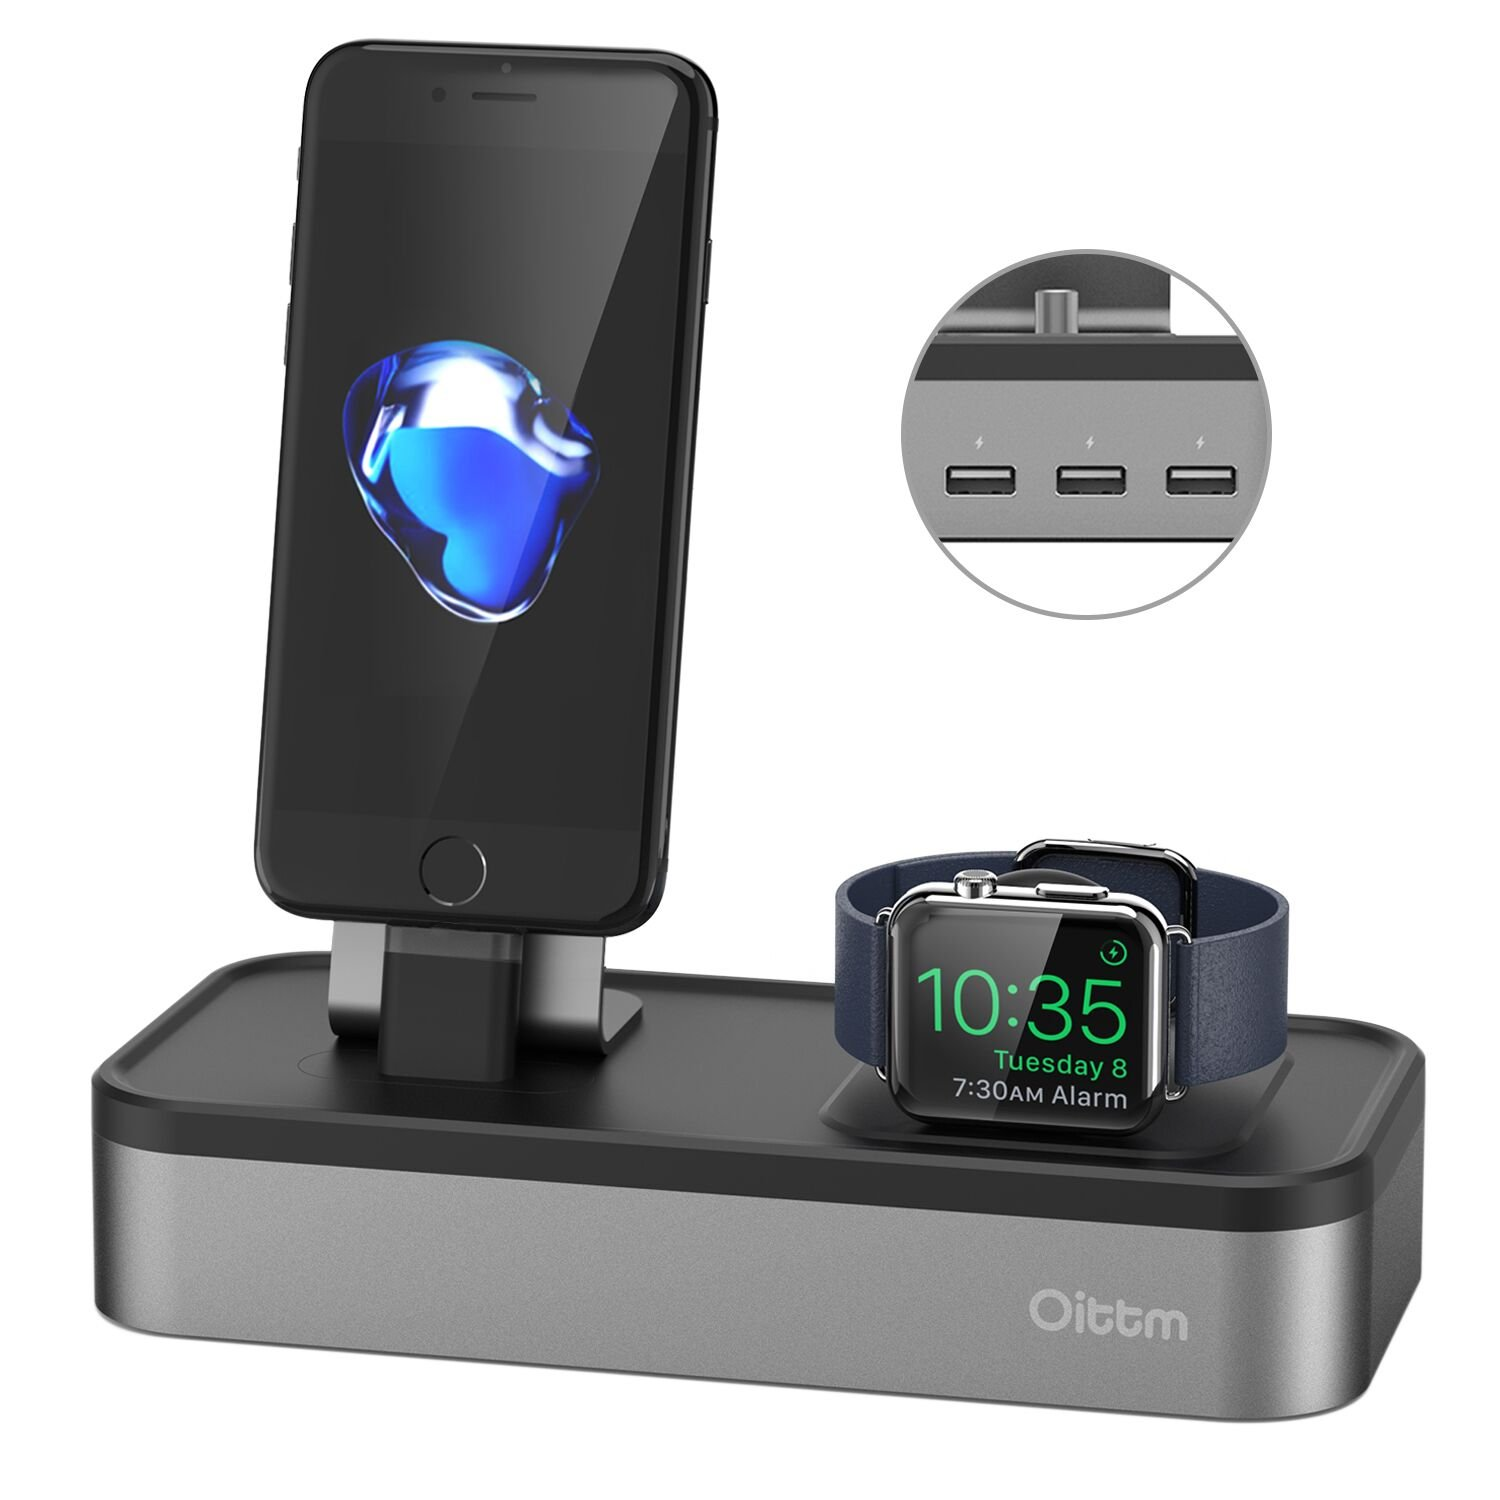 Apple Watch Series 3 Stand, Oittm [5 in 1 New Version] 5-port USB Rechargeable Stand for iWatch Series 3/2/1, iPhone X, 8, 8 Plus, 7, 7 Plus, 6, iPad Mini, iPod, Apple Pencil (Space Gray)